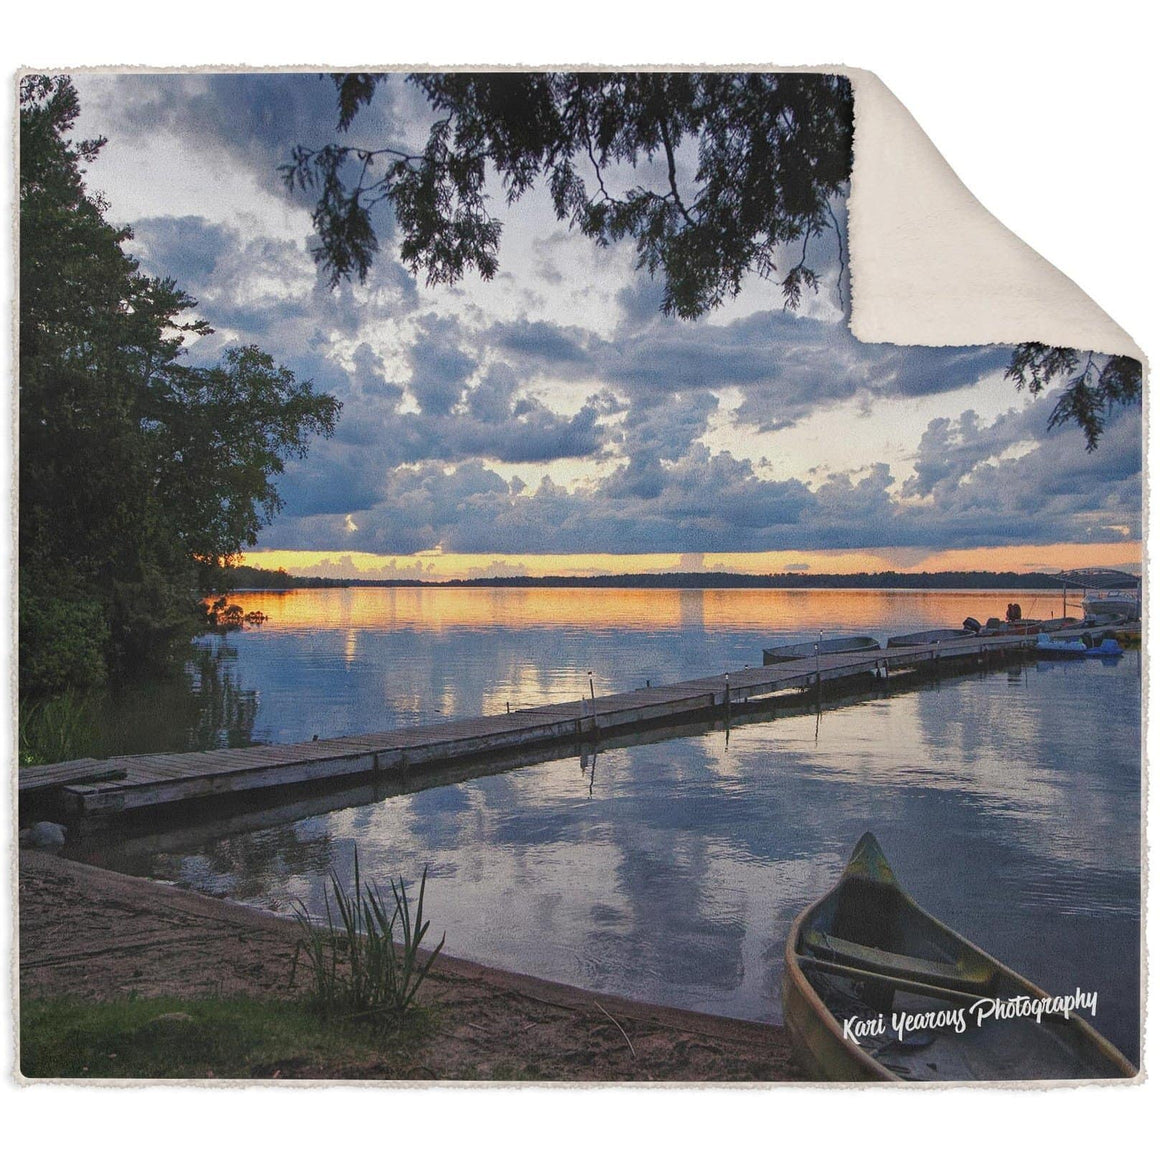 Blanket, Sherpa Fleece, Deer Lake Minnesota Sunset with Canoe - Kari Yearous Photography WinonaGifts KetoGifts LoveDecorah